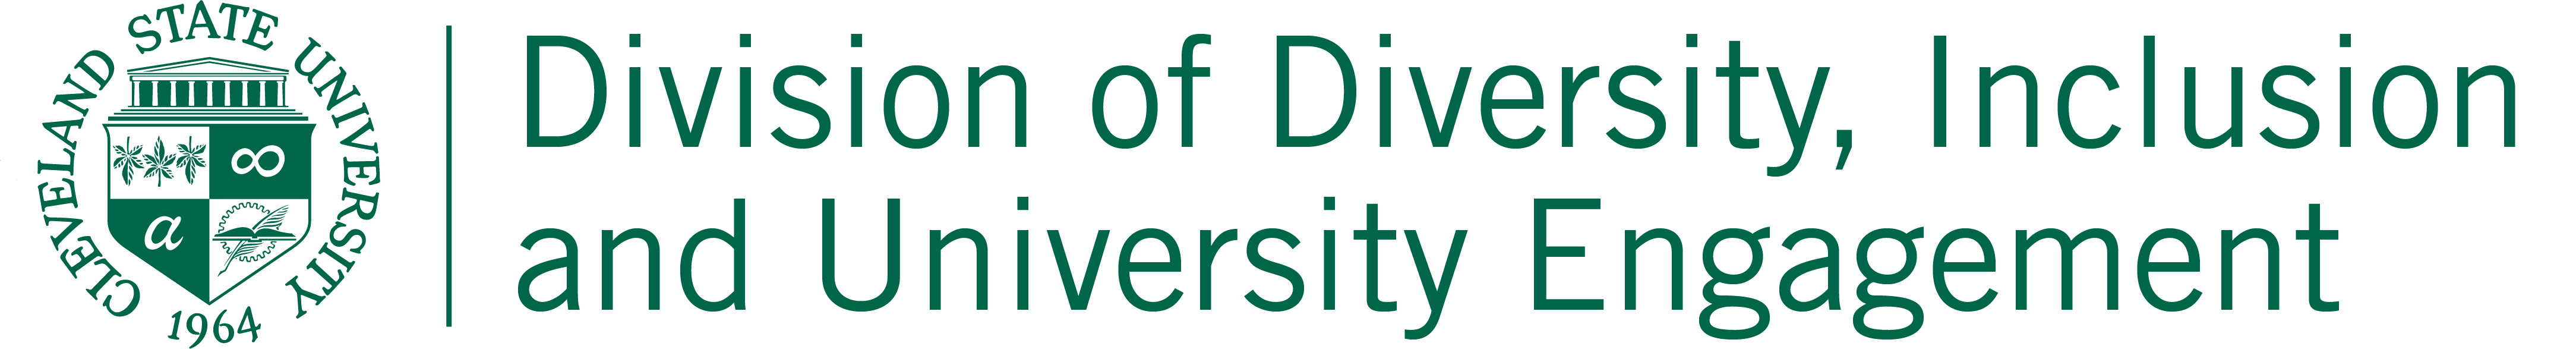 Diversity Inclusion and University Engagement | Cleveland State University | CSU